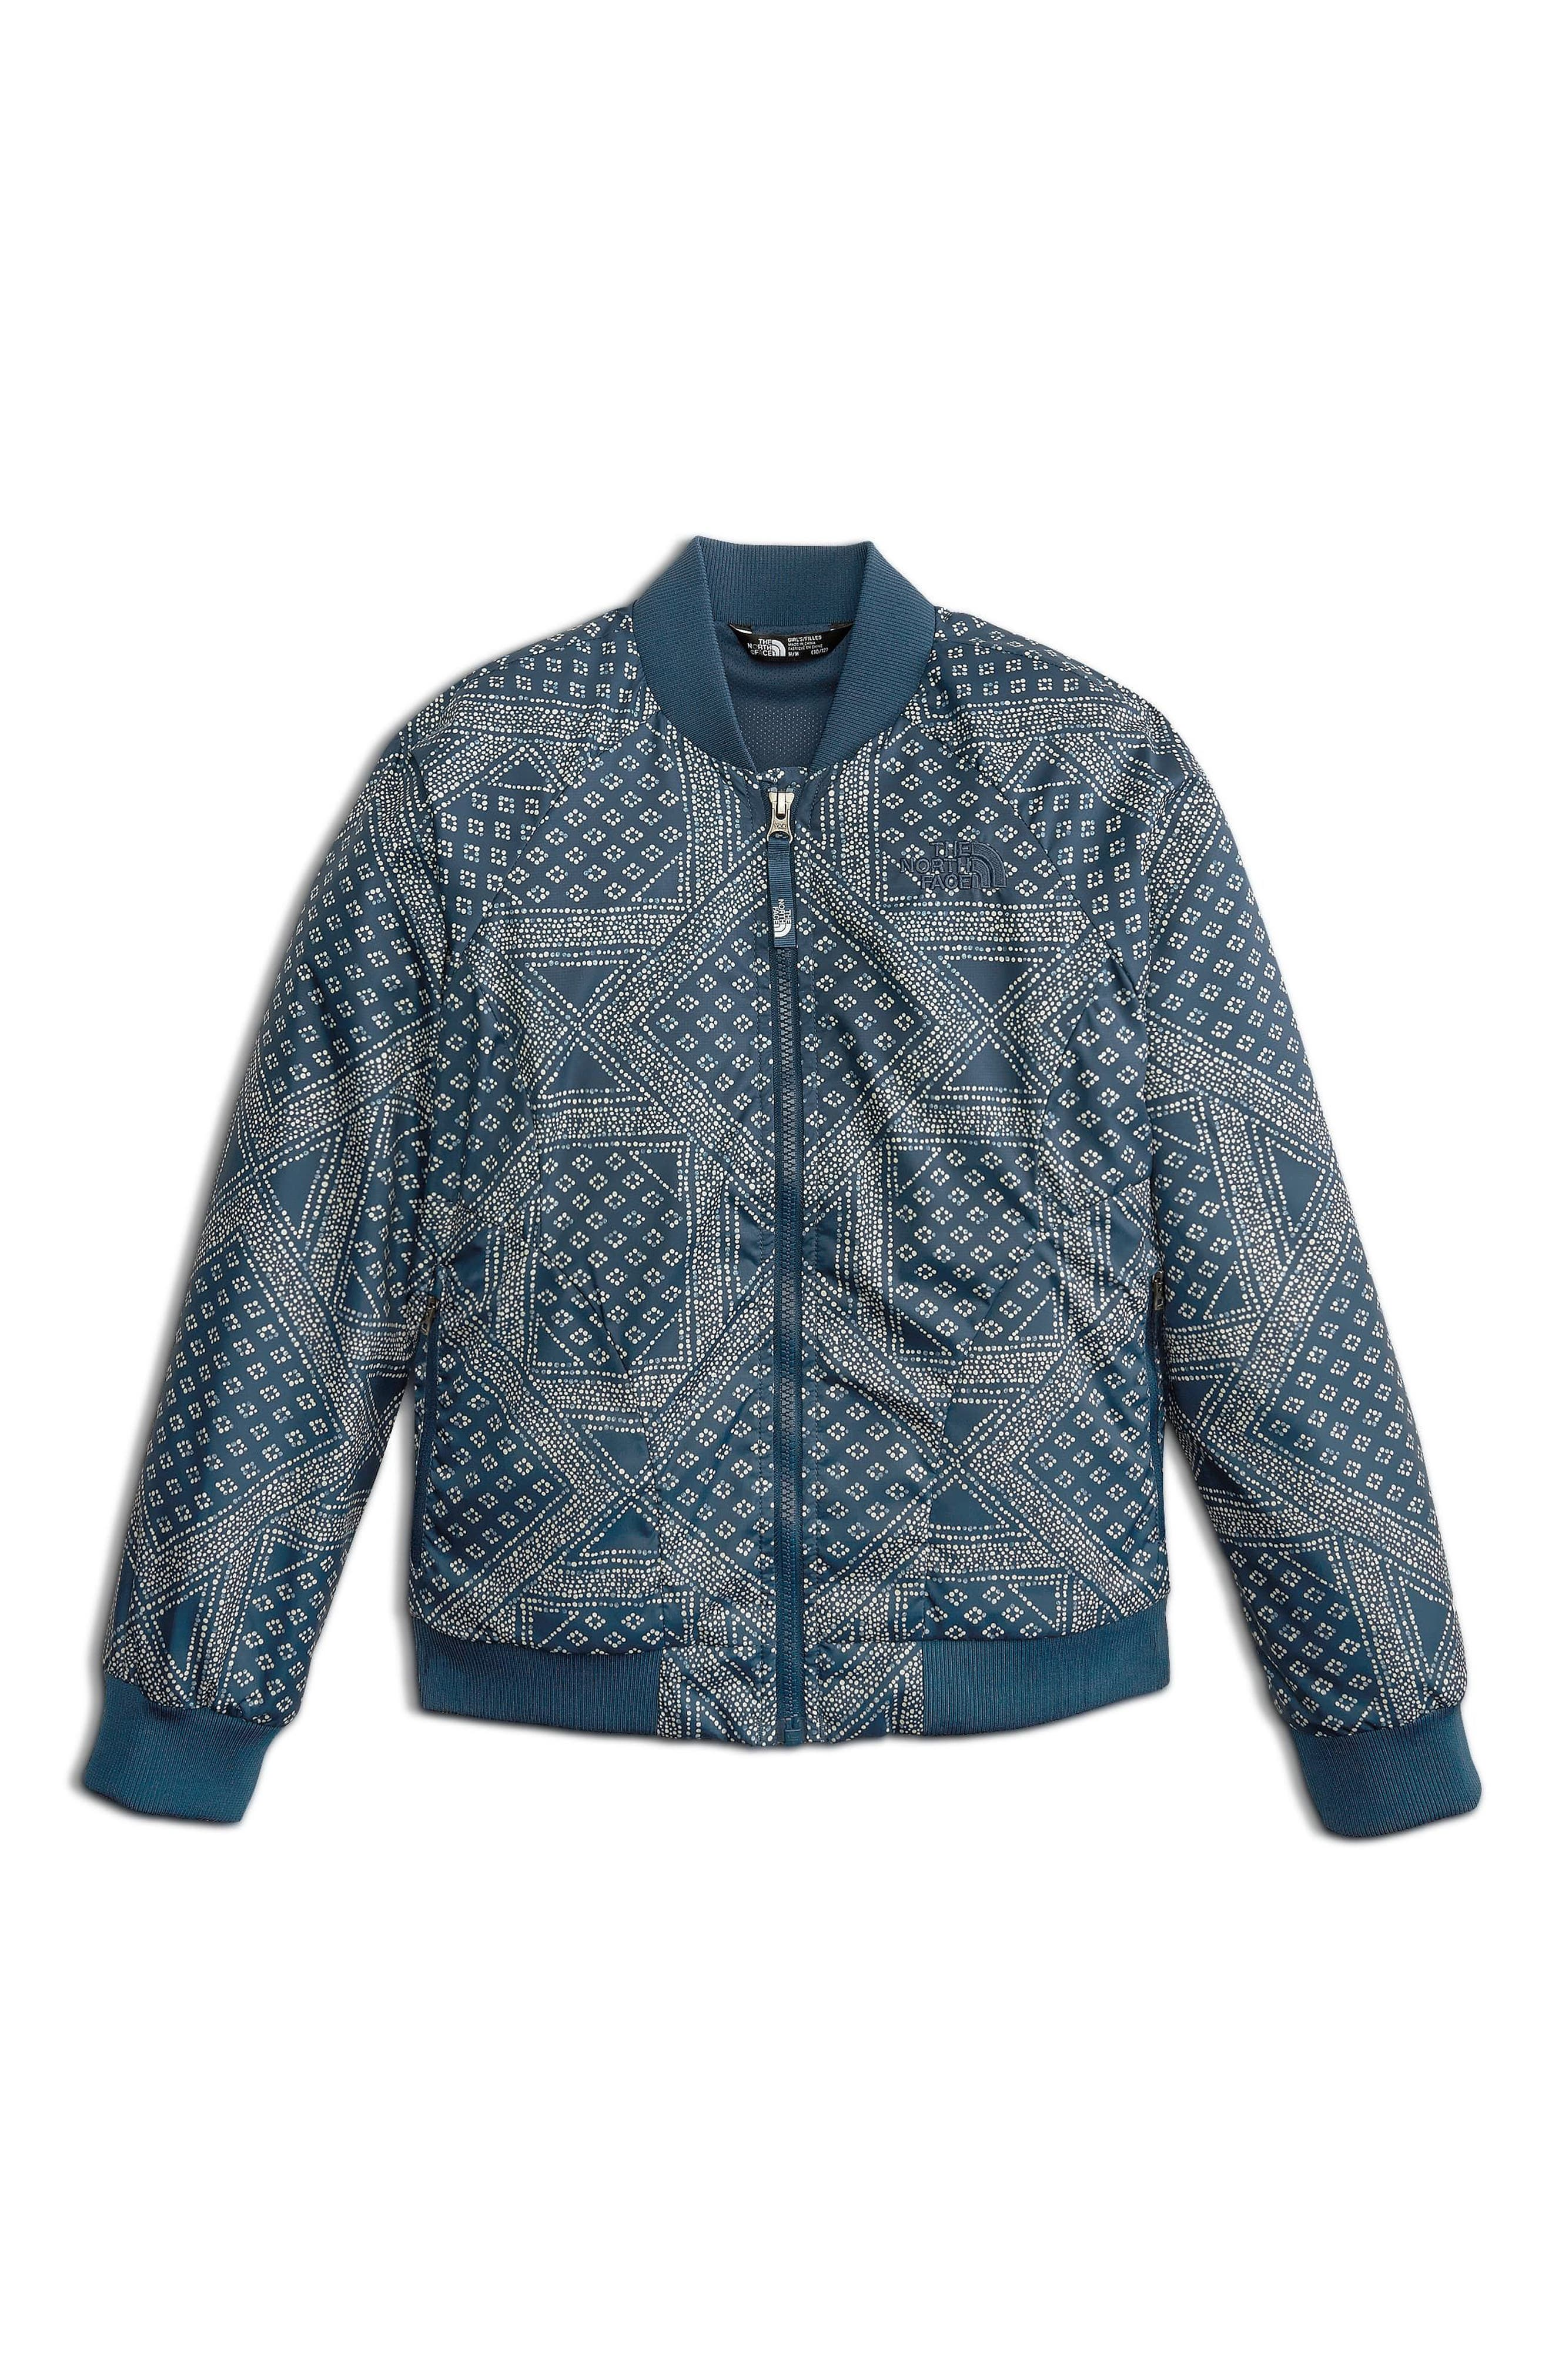 Flurry Wind Bomber Jacket,                             Main thumbnail 1, color,                             Blue Wing Teal Bandana Print